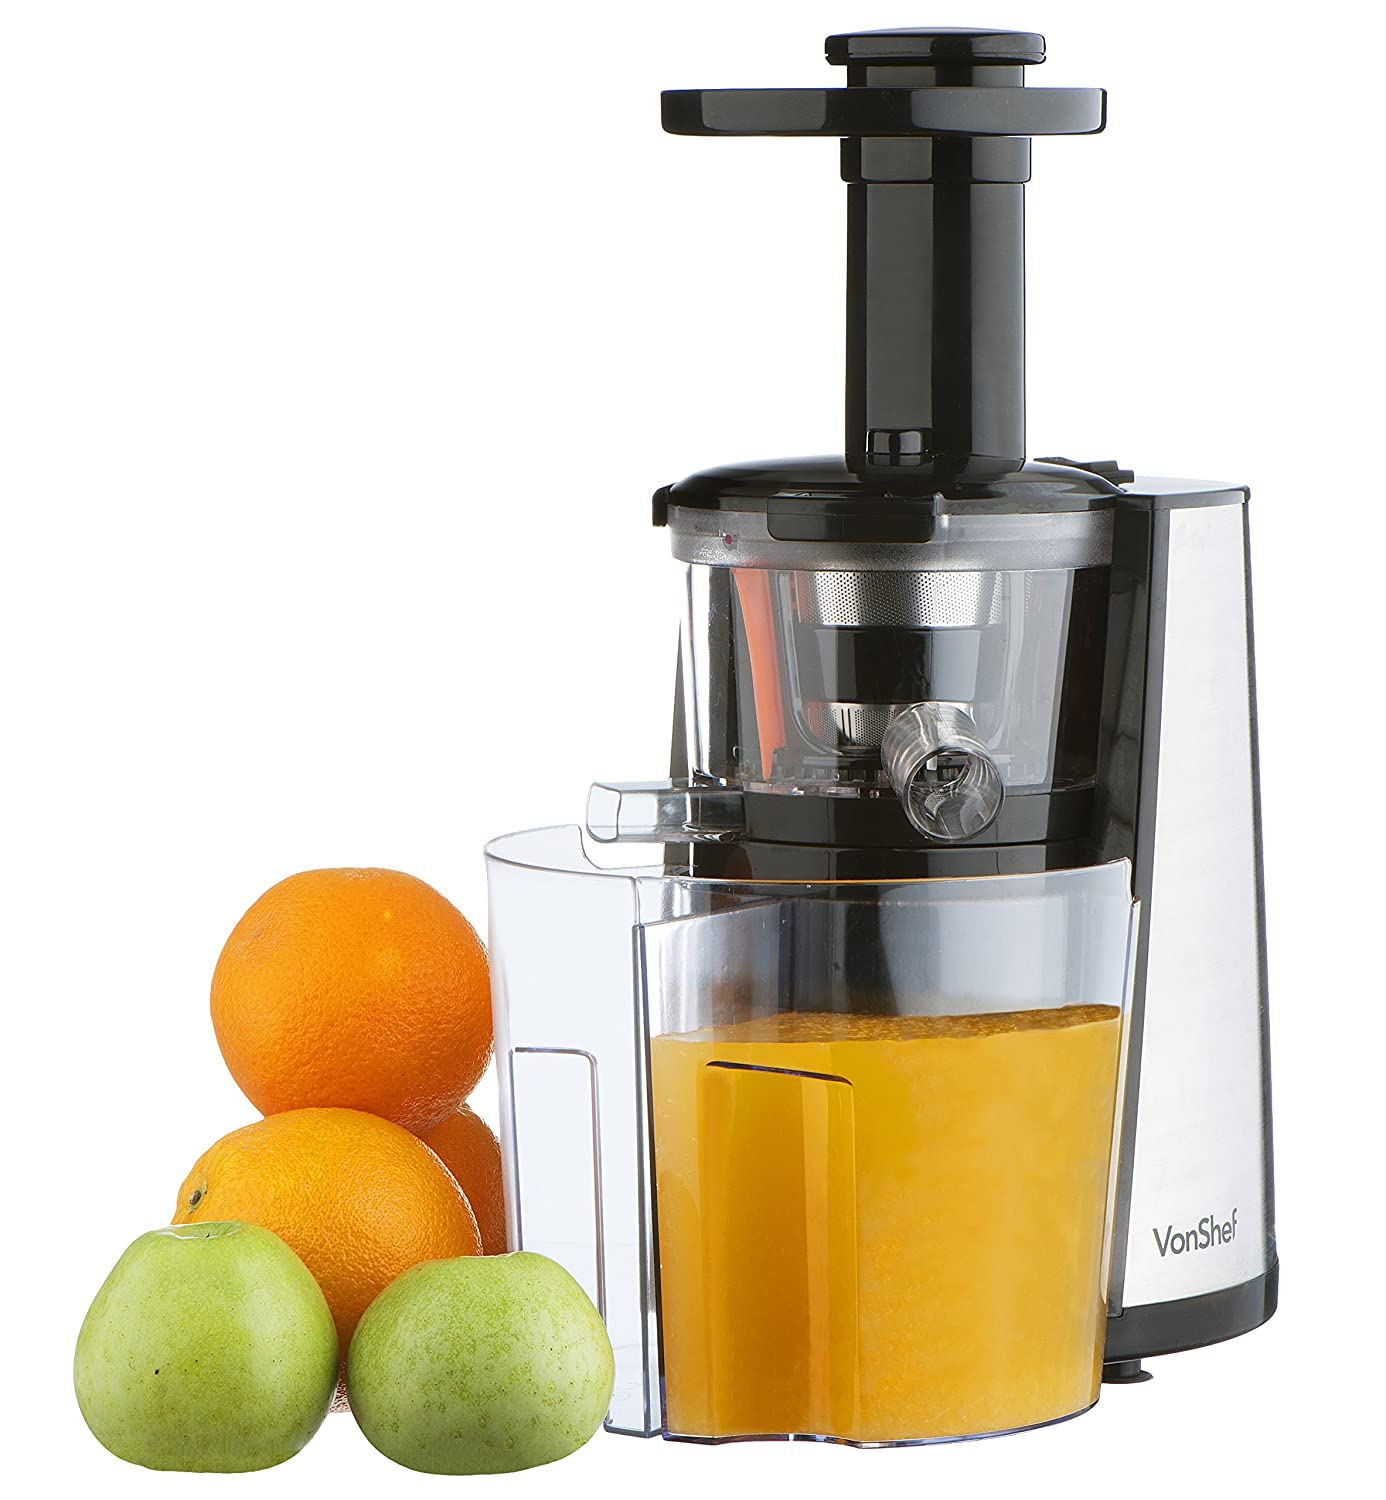 Best Masticating Juicers Of 2017 : Top 10 Best Masticating Juicers 2016-2017 on Flipboard